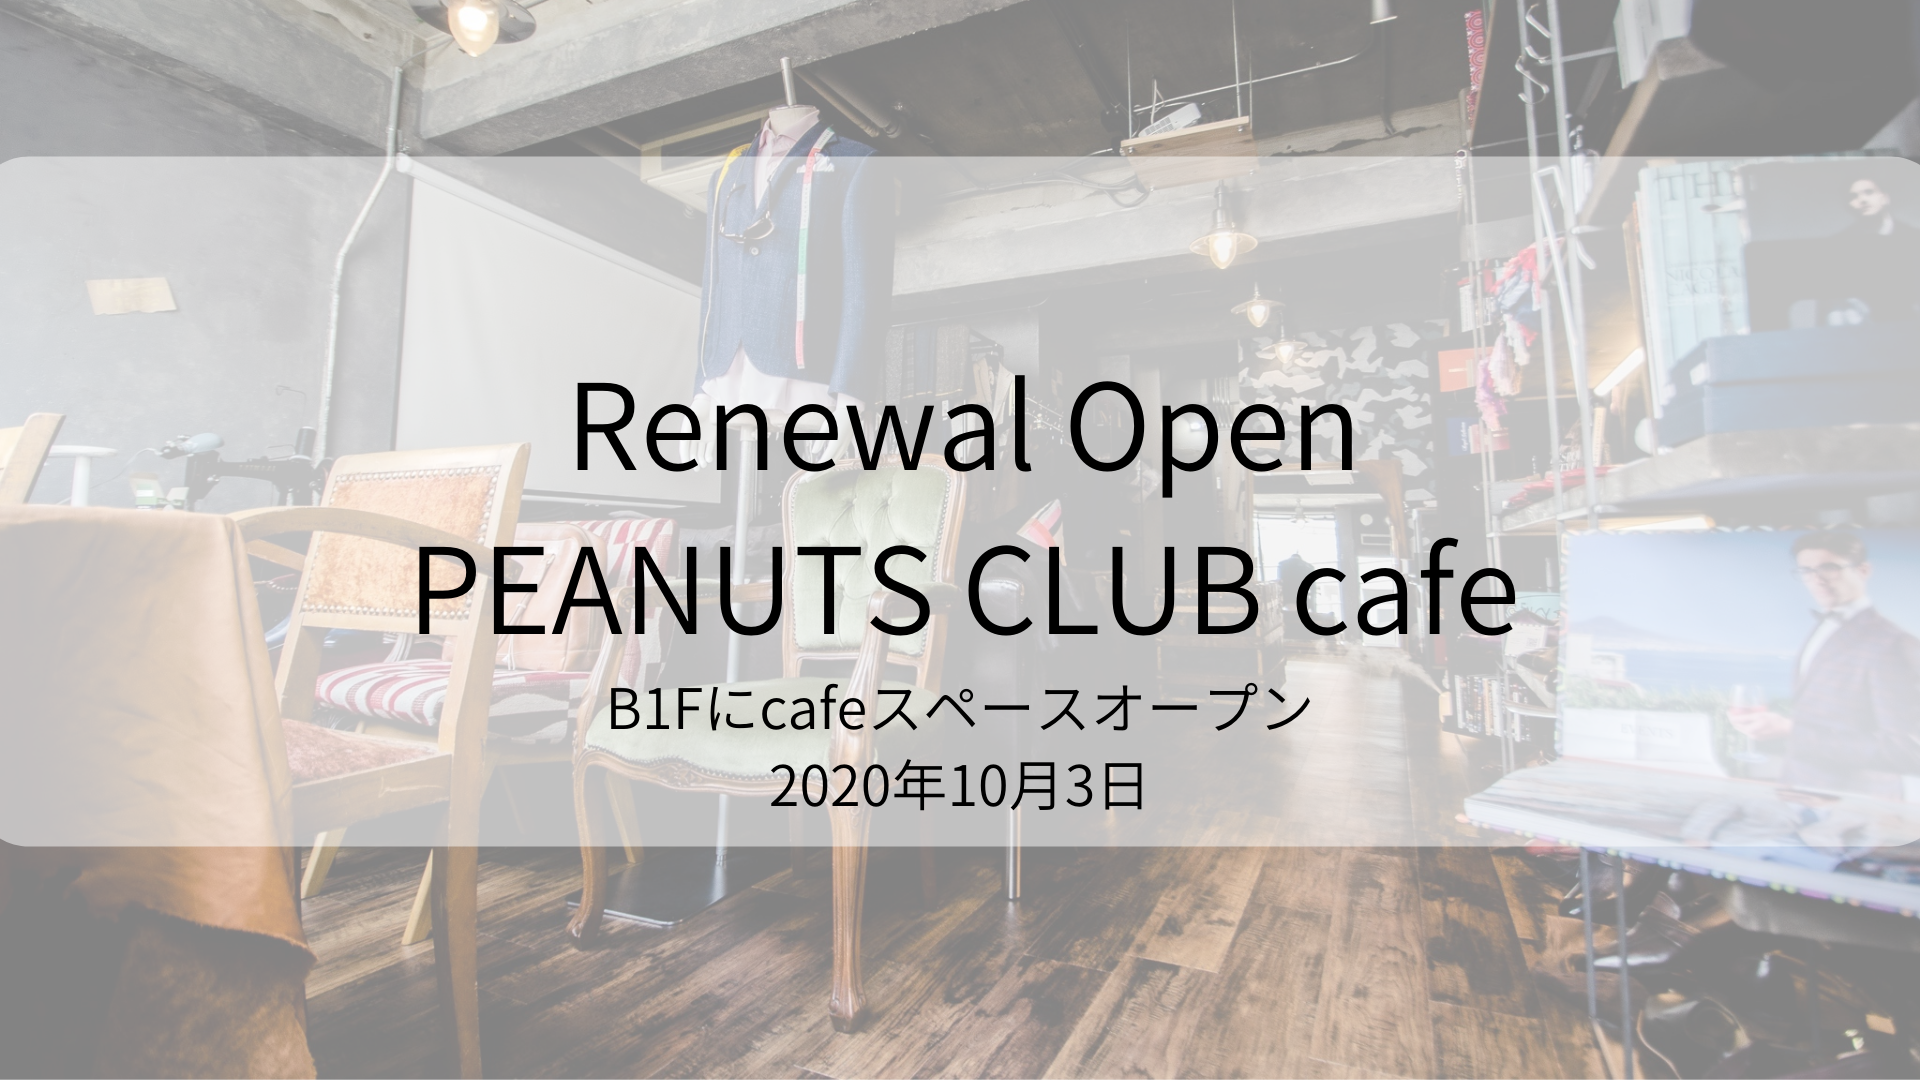 10/3 LUSSO cafe Renewal Open Event